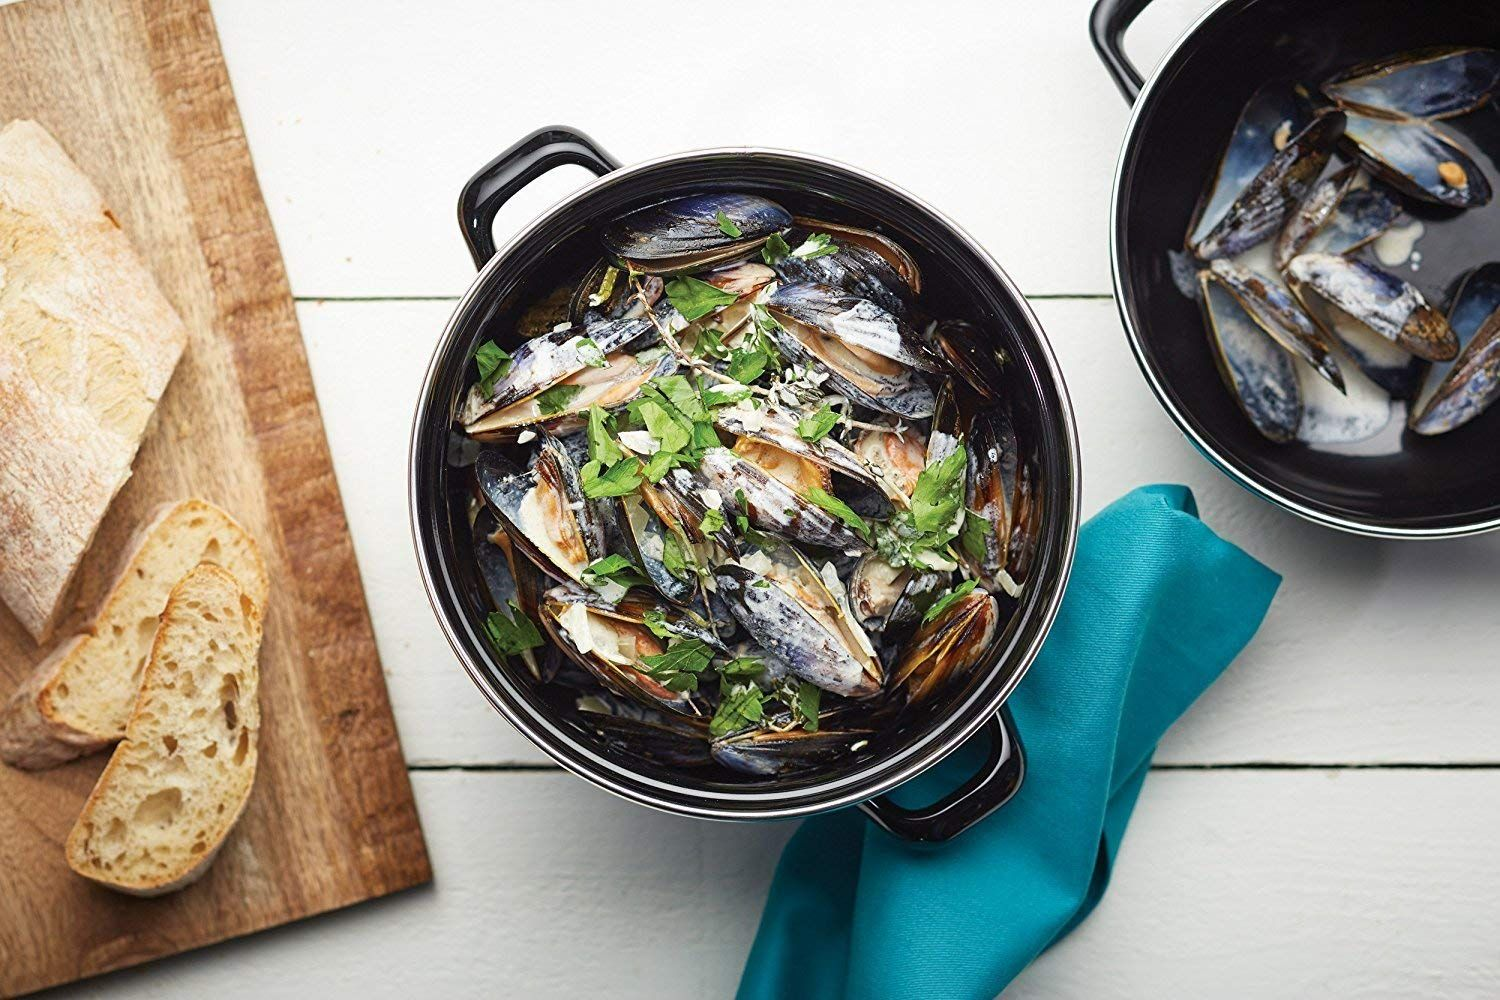 Mussels boiling in a pan